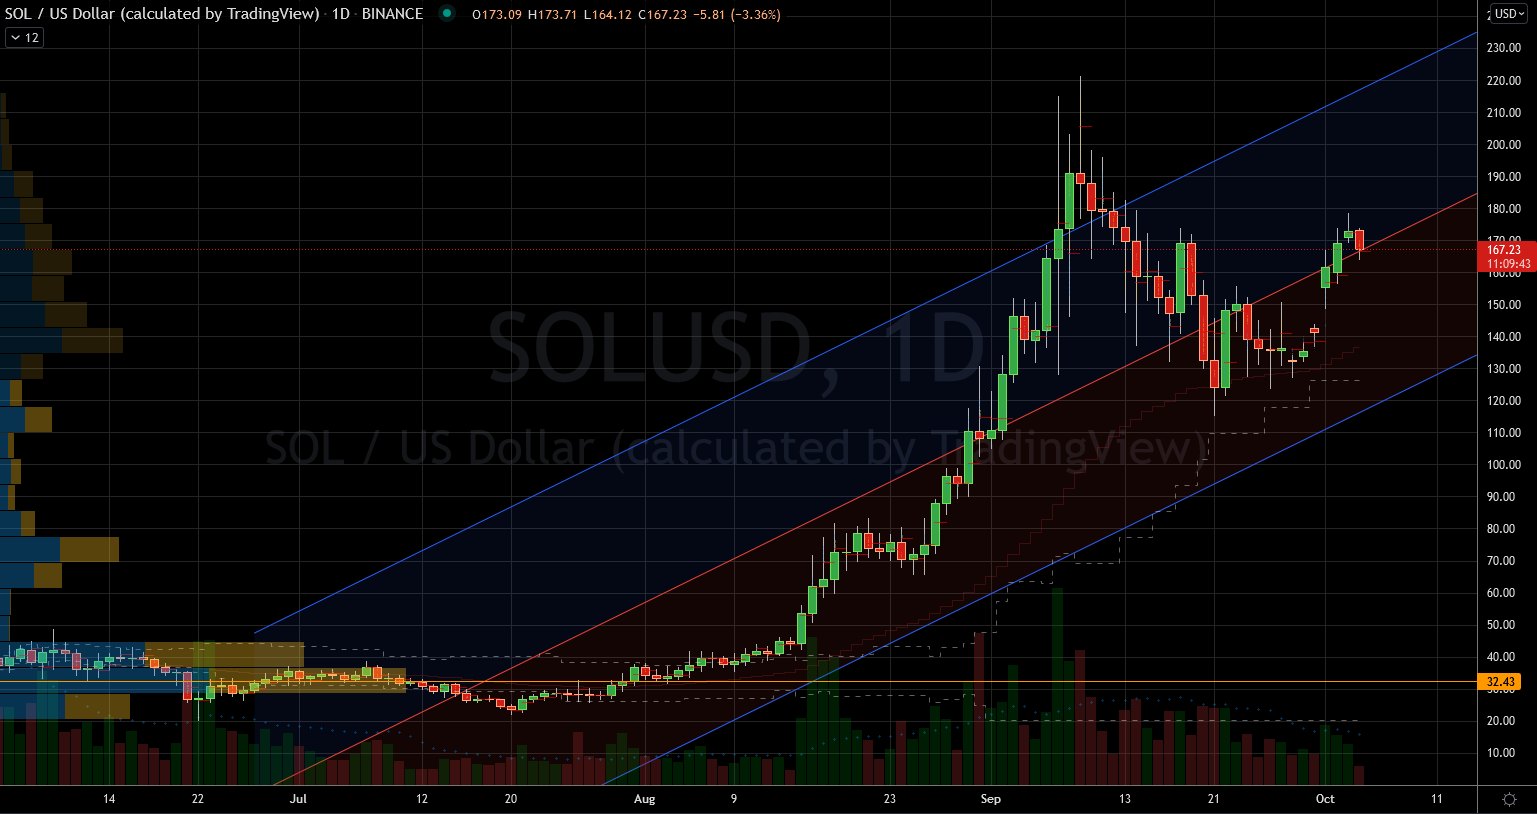 Crypto Coins: Solano (SOL-USD) Stock Chart Showing Strong Trend